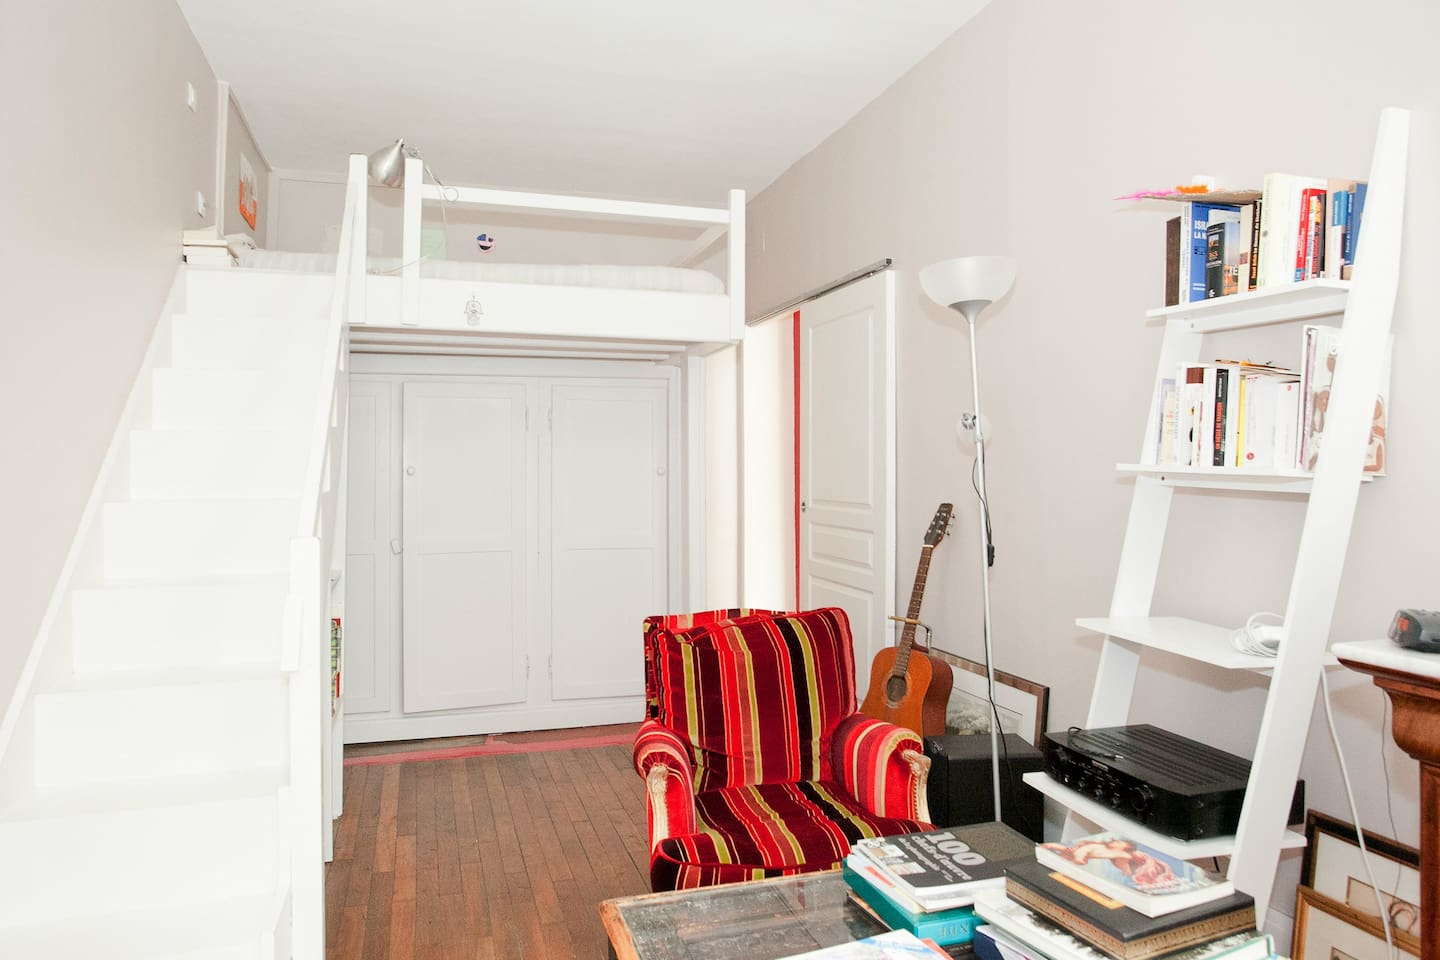 4 ROOMS-FLAT IN THE HEART OF PARIS